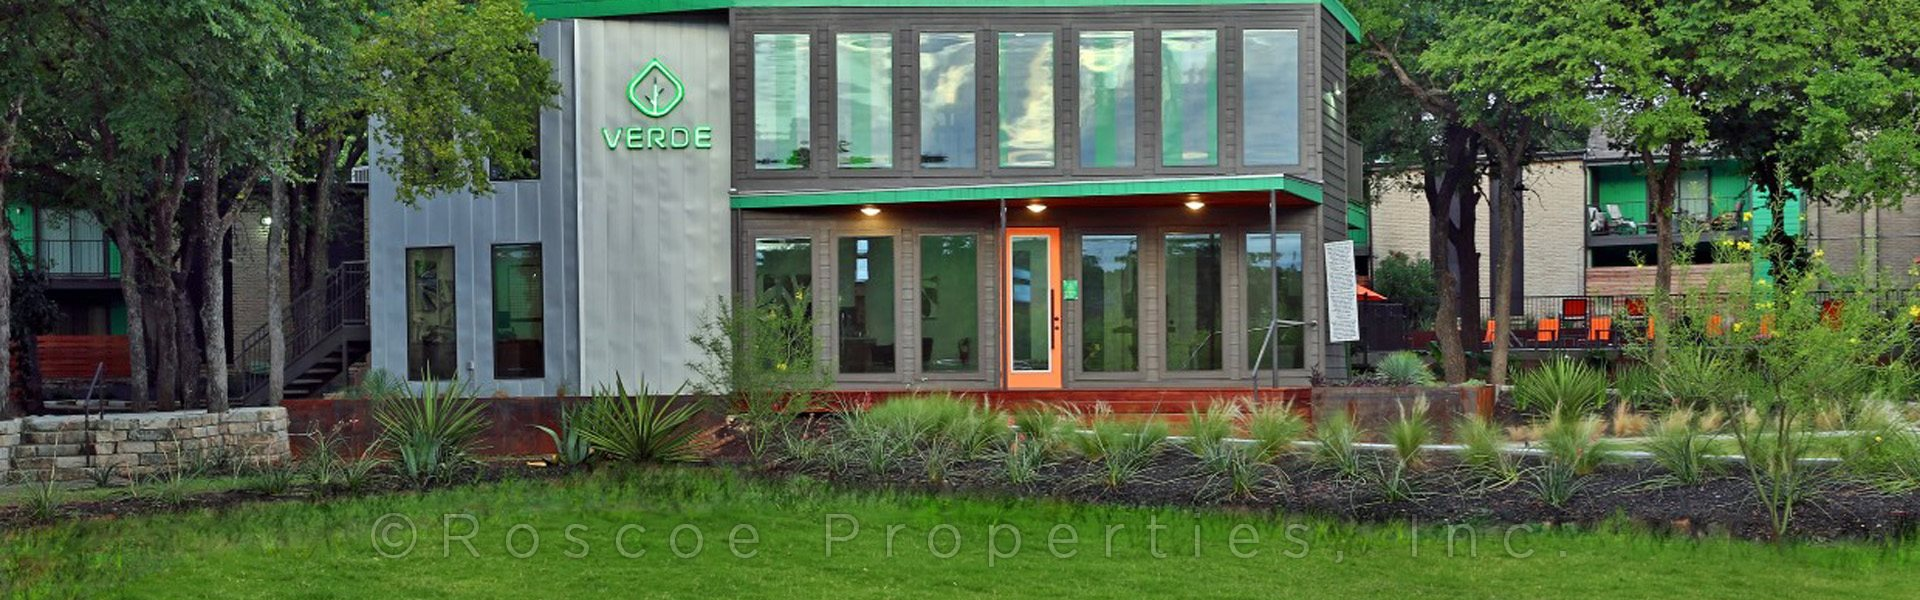 Verde Apartments banner 1